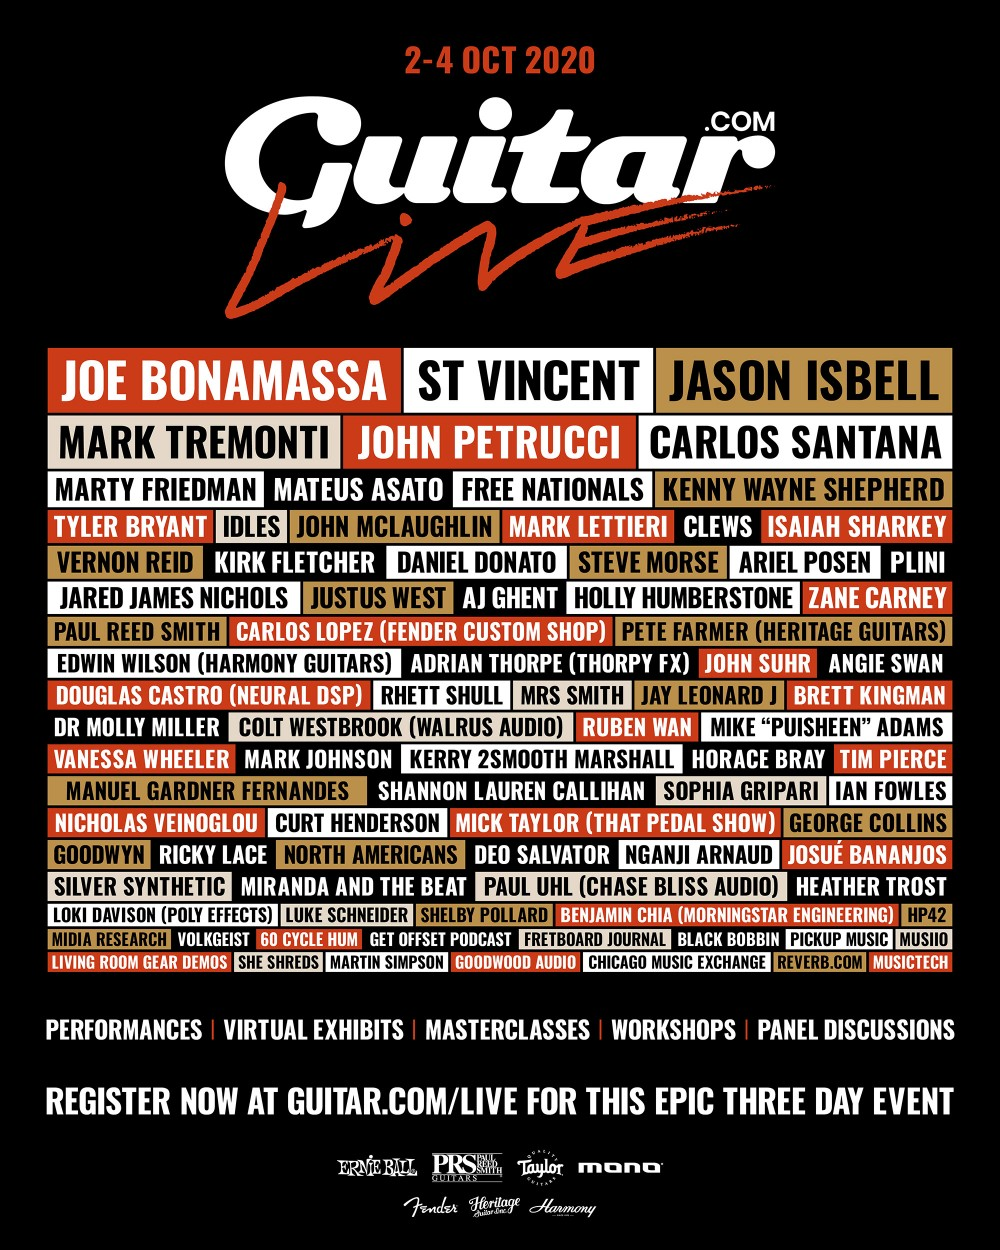 Guitar.com Live event flyer